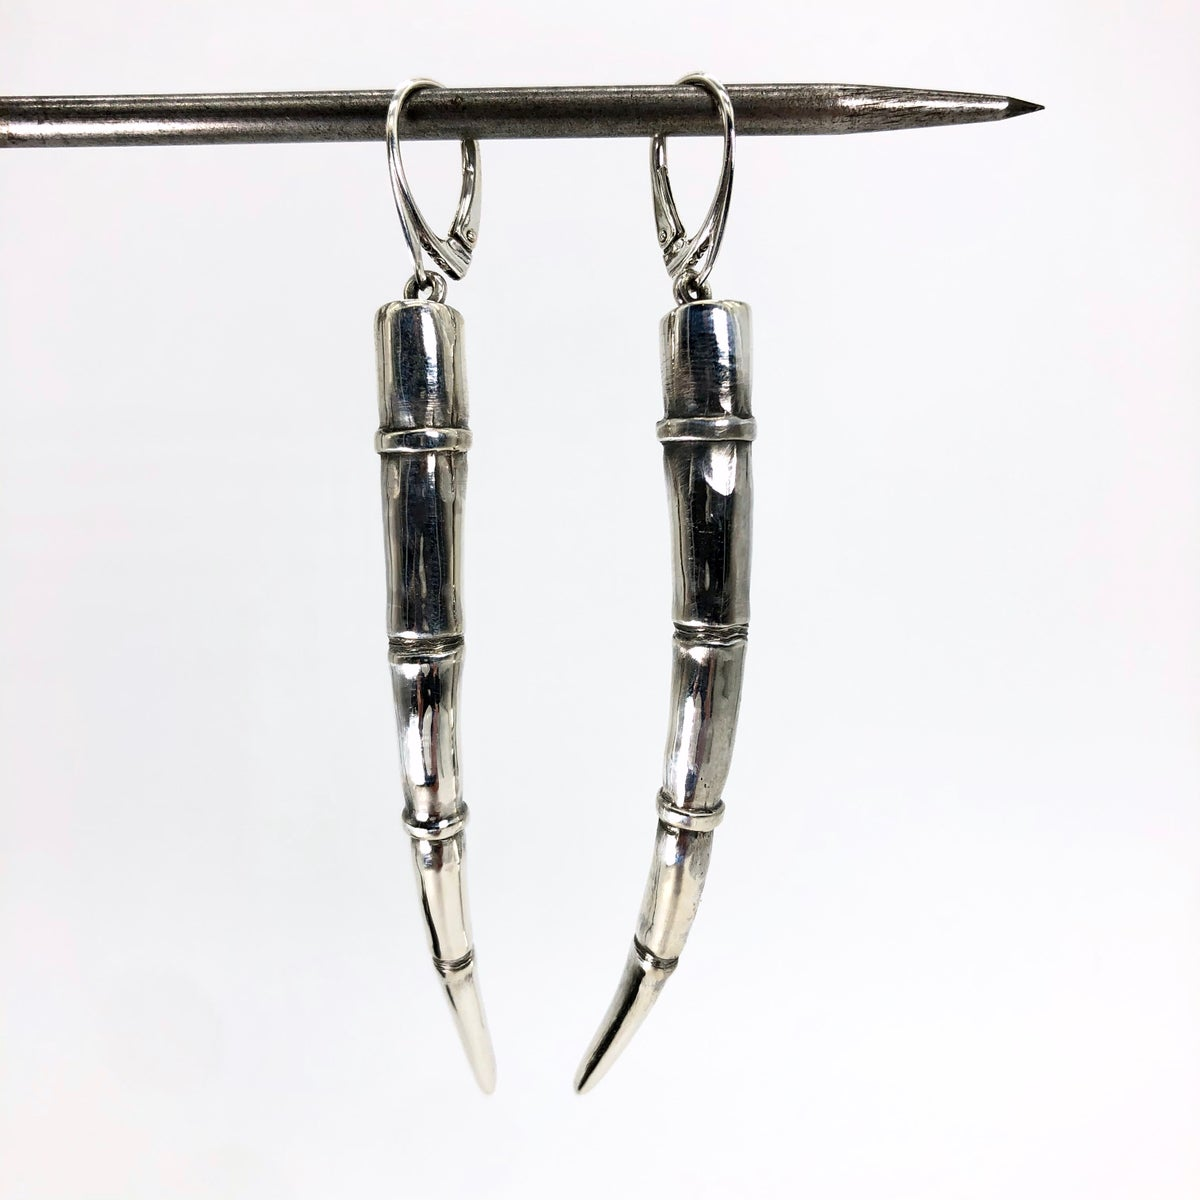 Image of Tendril Earrings, Silver #1